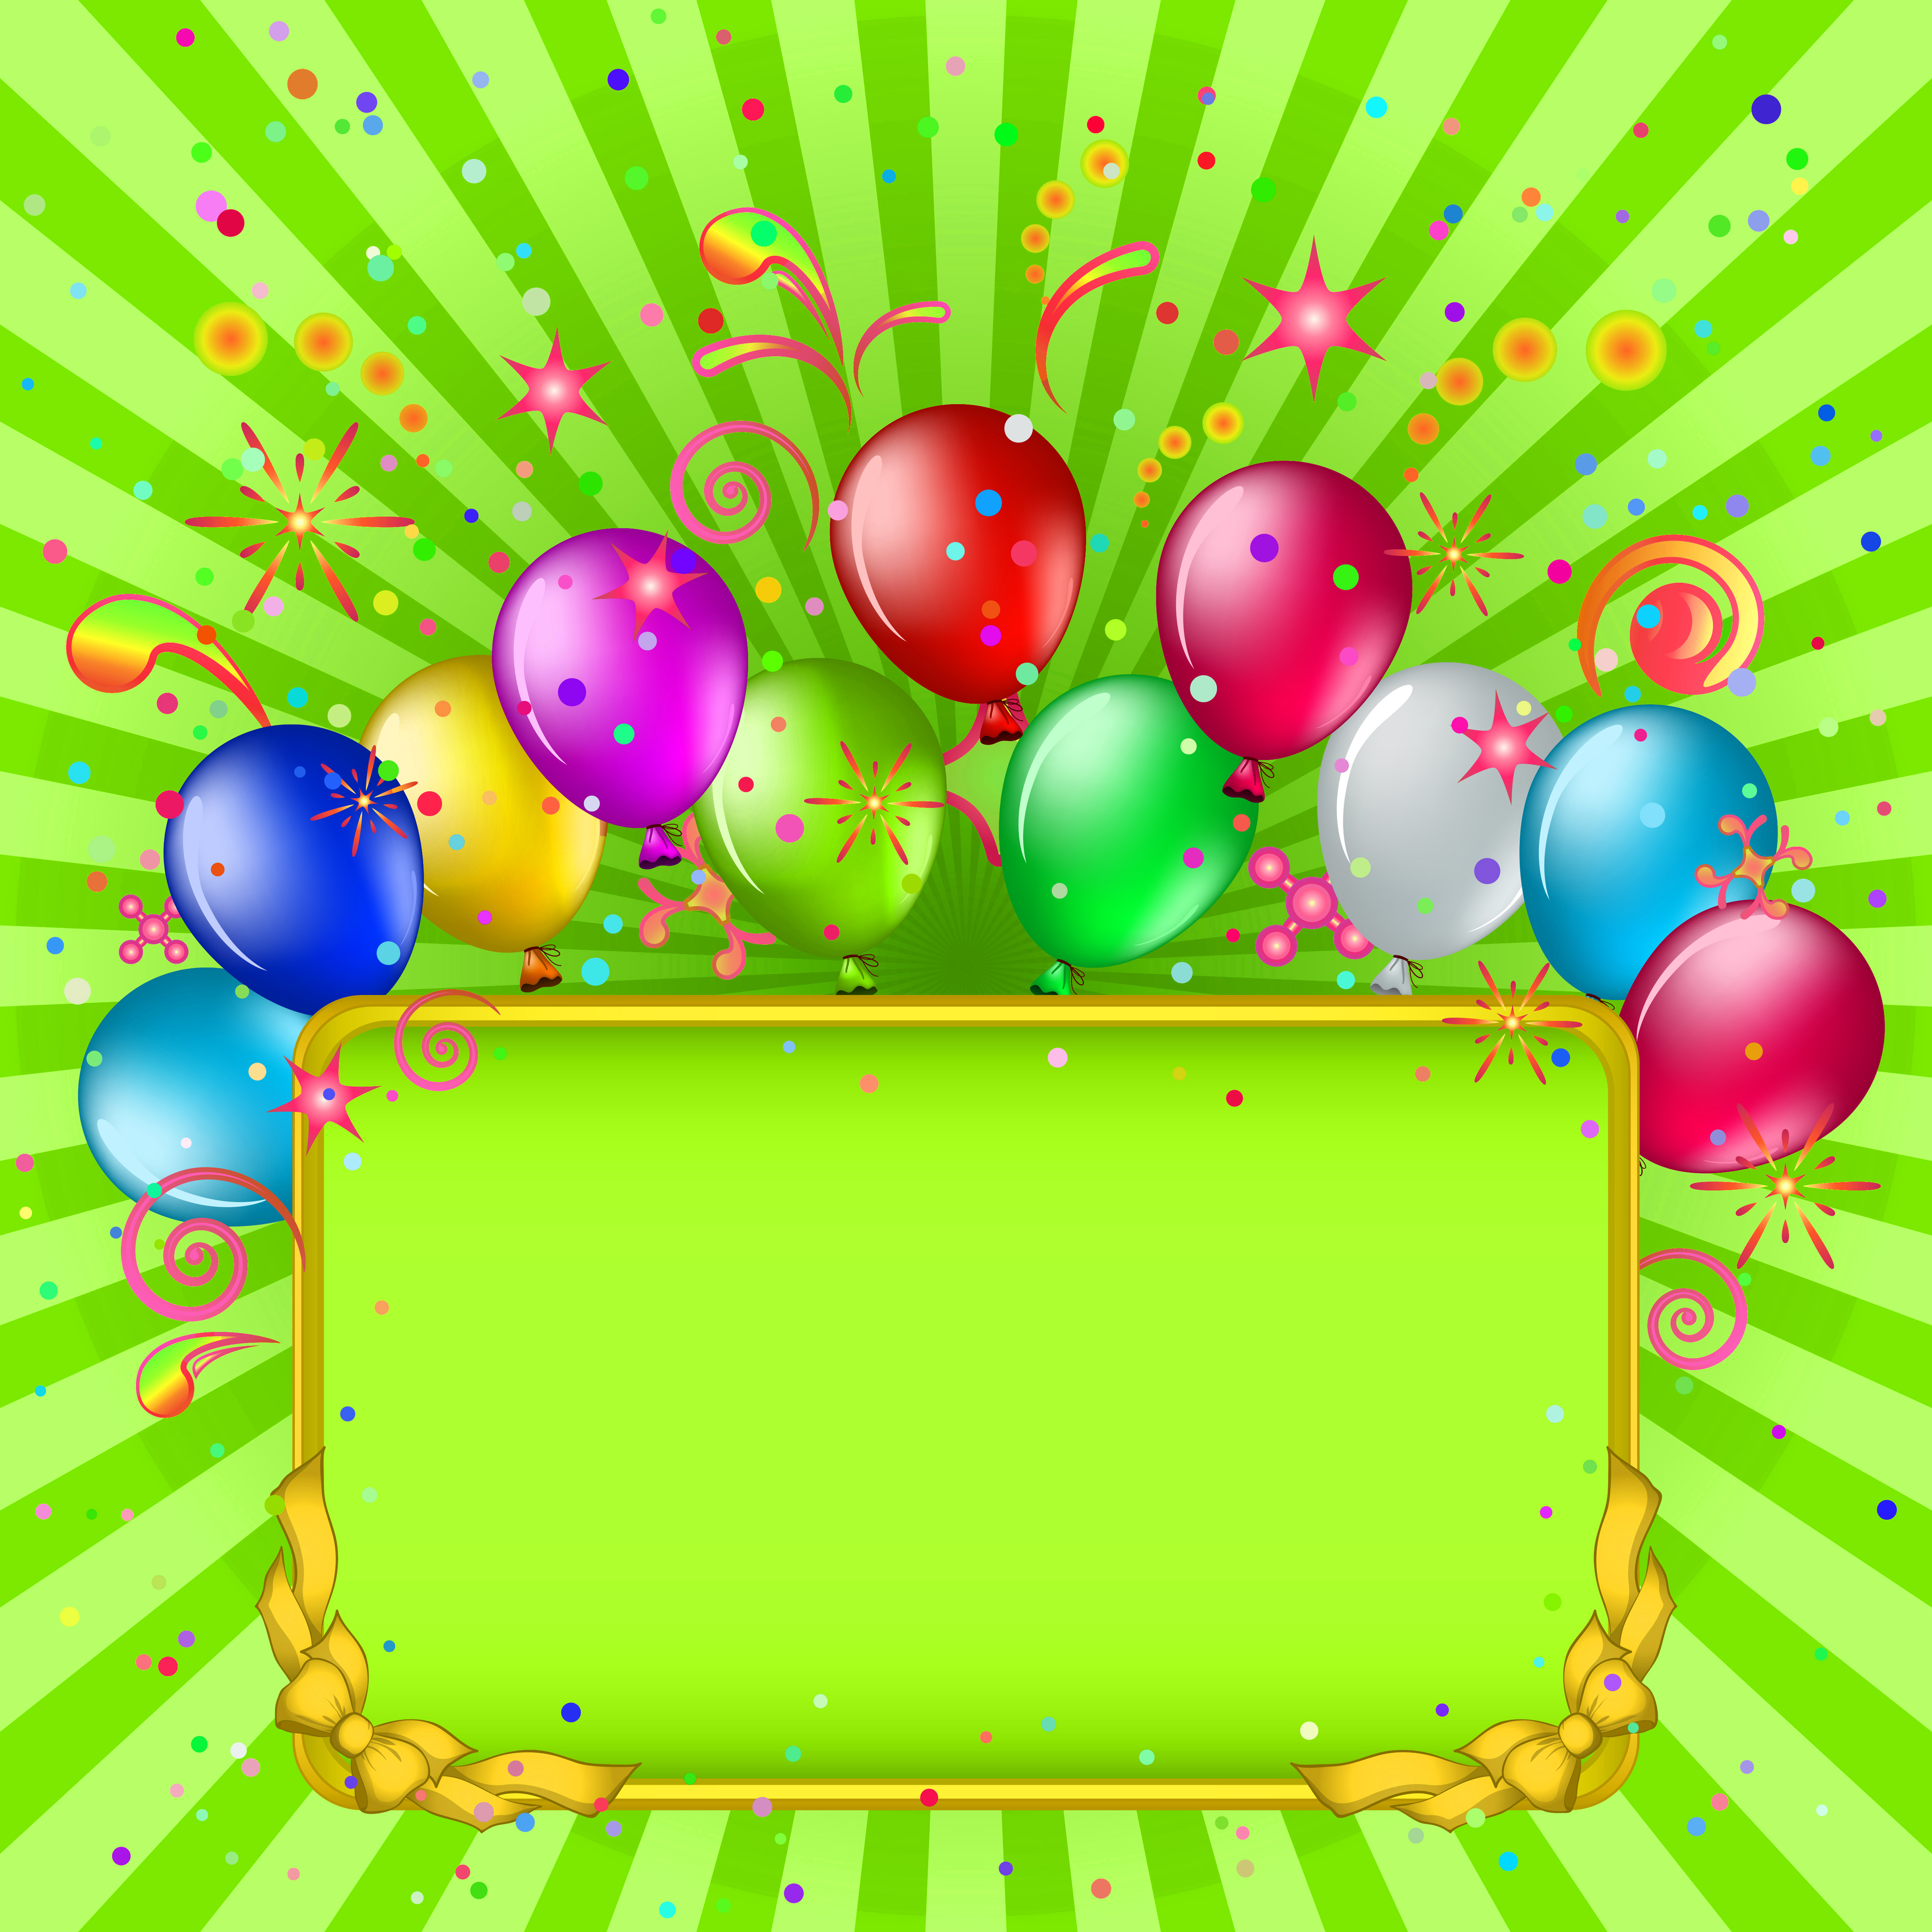 Green Birthday Background with Balloons.